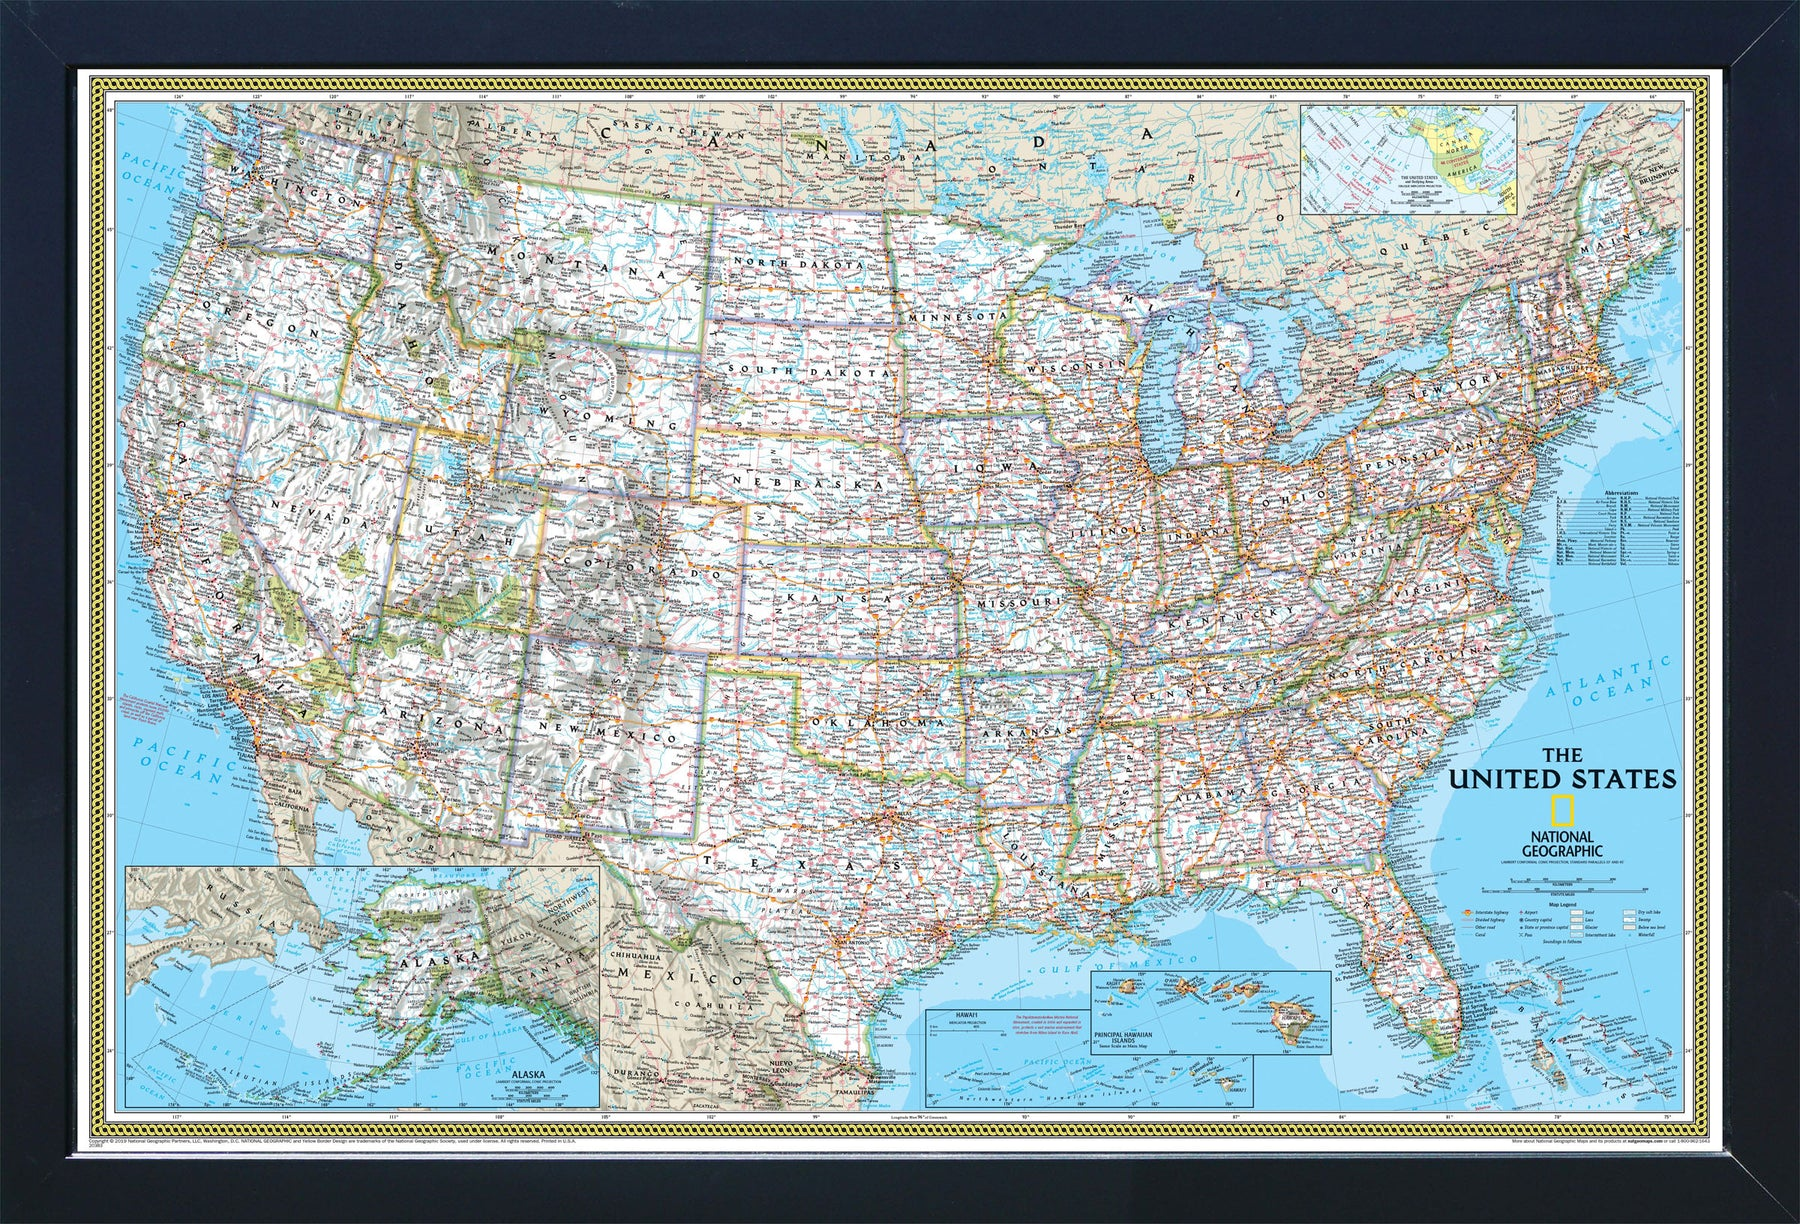 National Geographic Framed Magnetic Travel Map Classic Home Magnetics